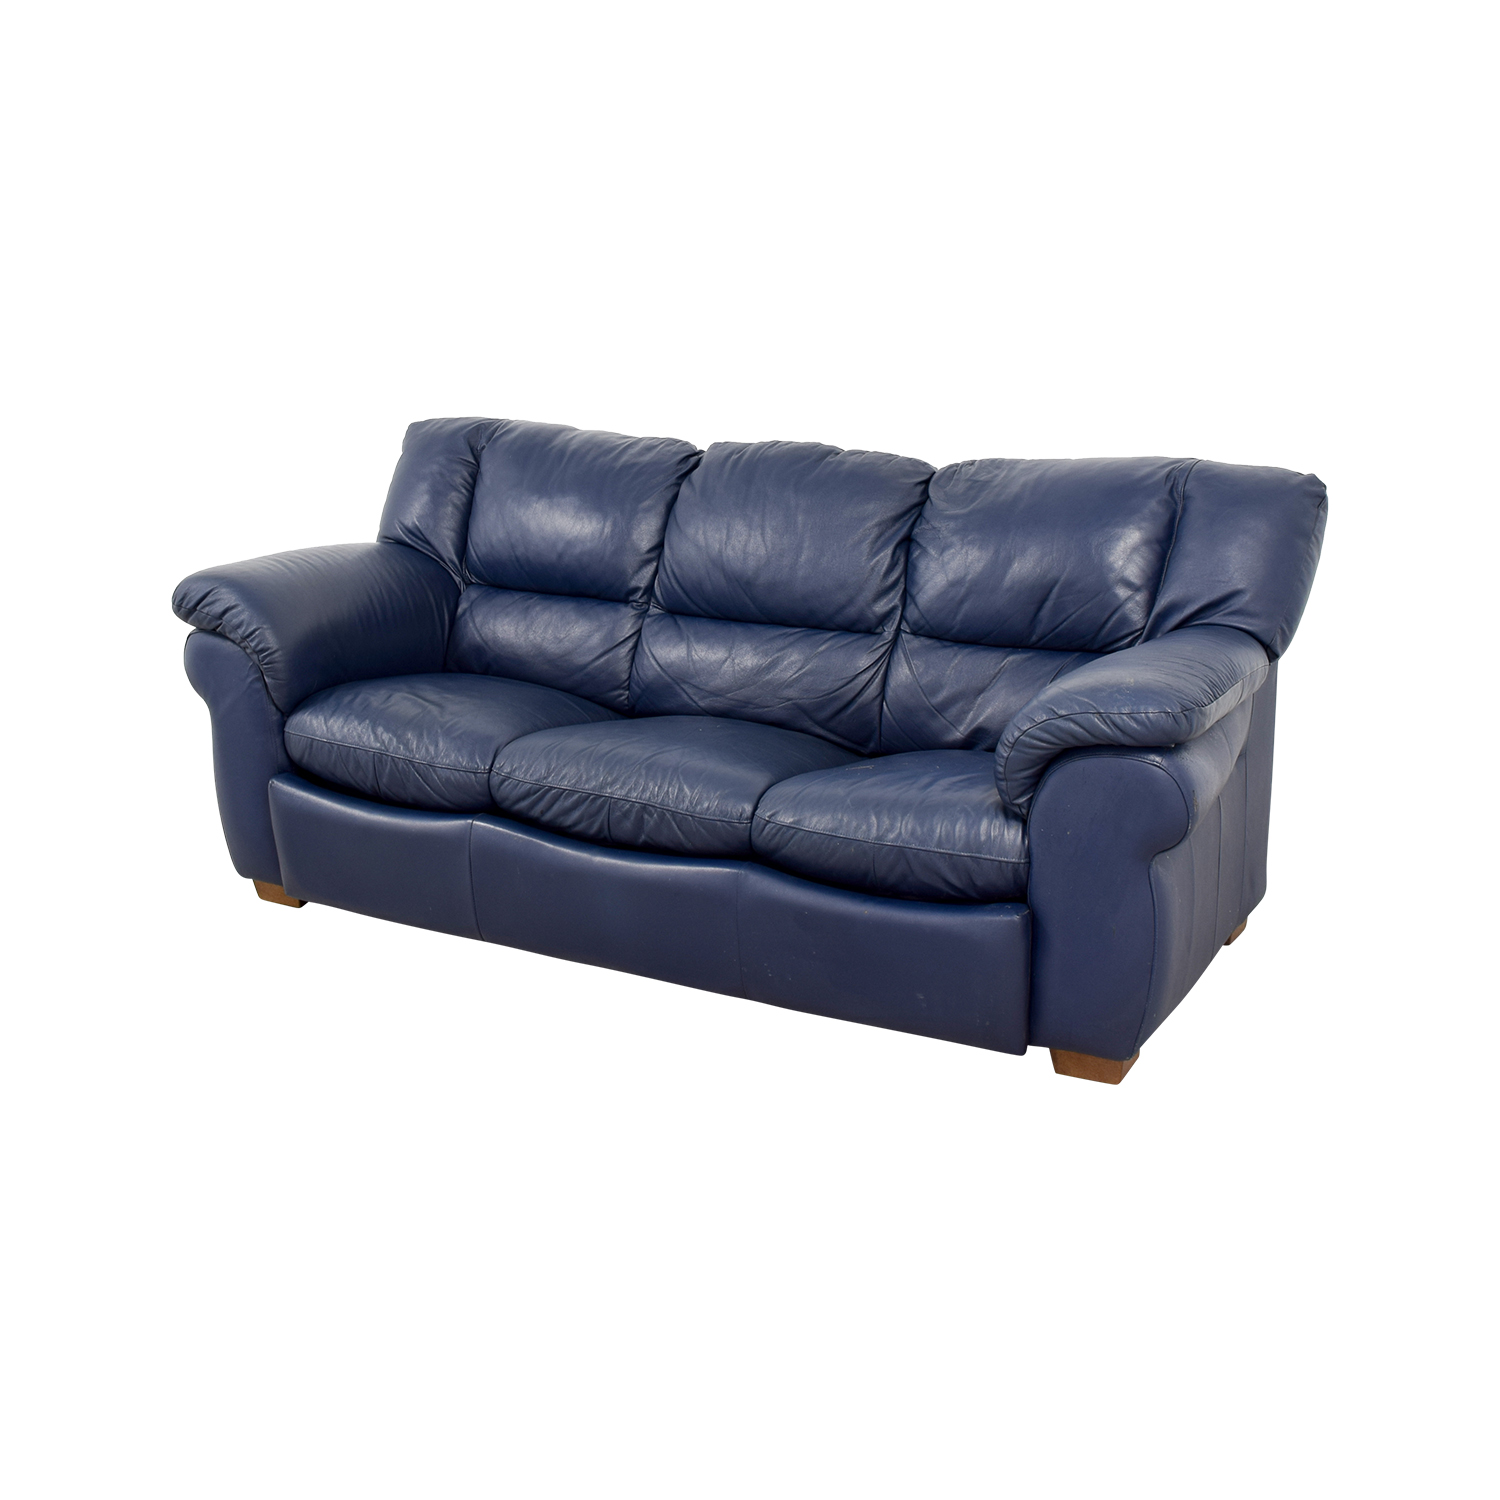 86 OFF Macys Macys Navy Blue Leather Three Cushion